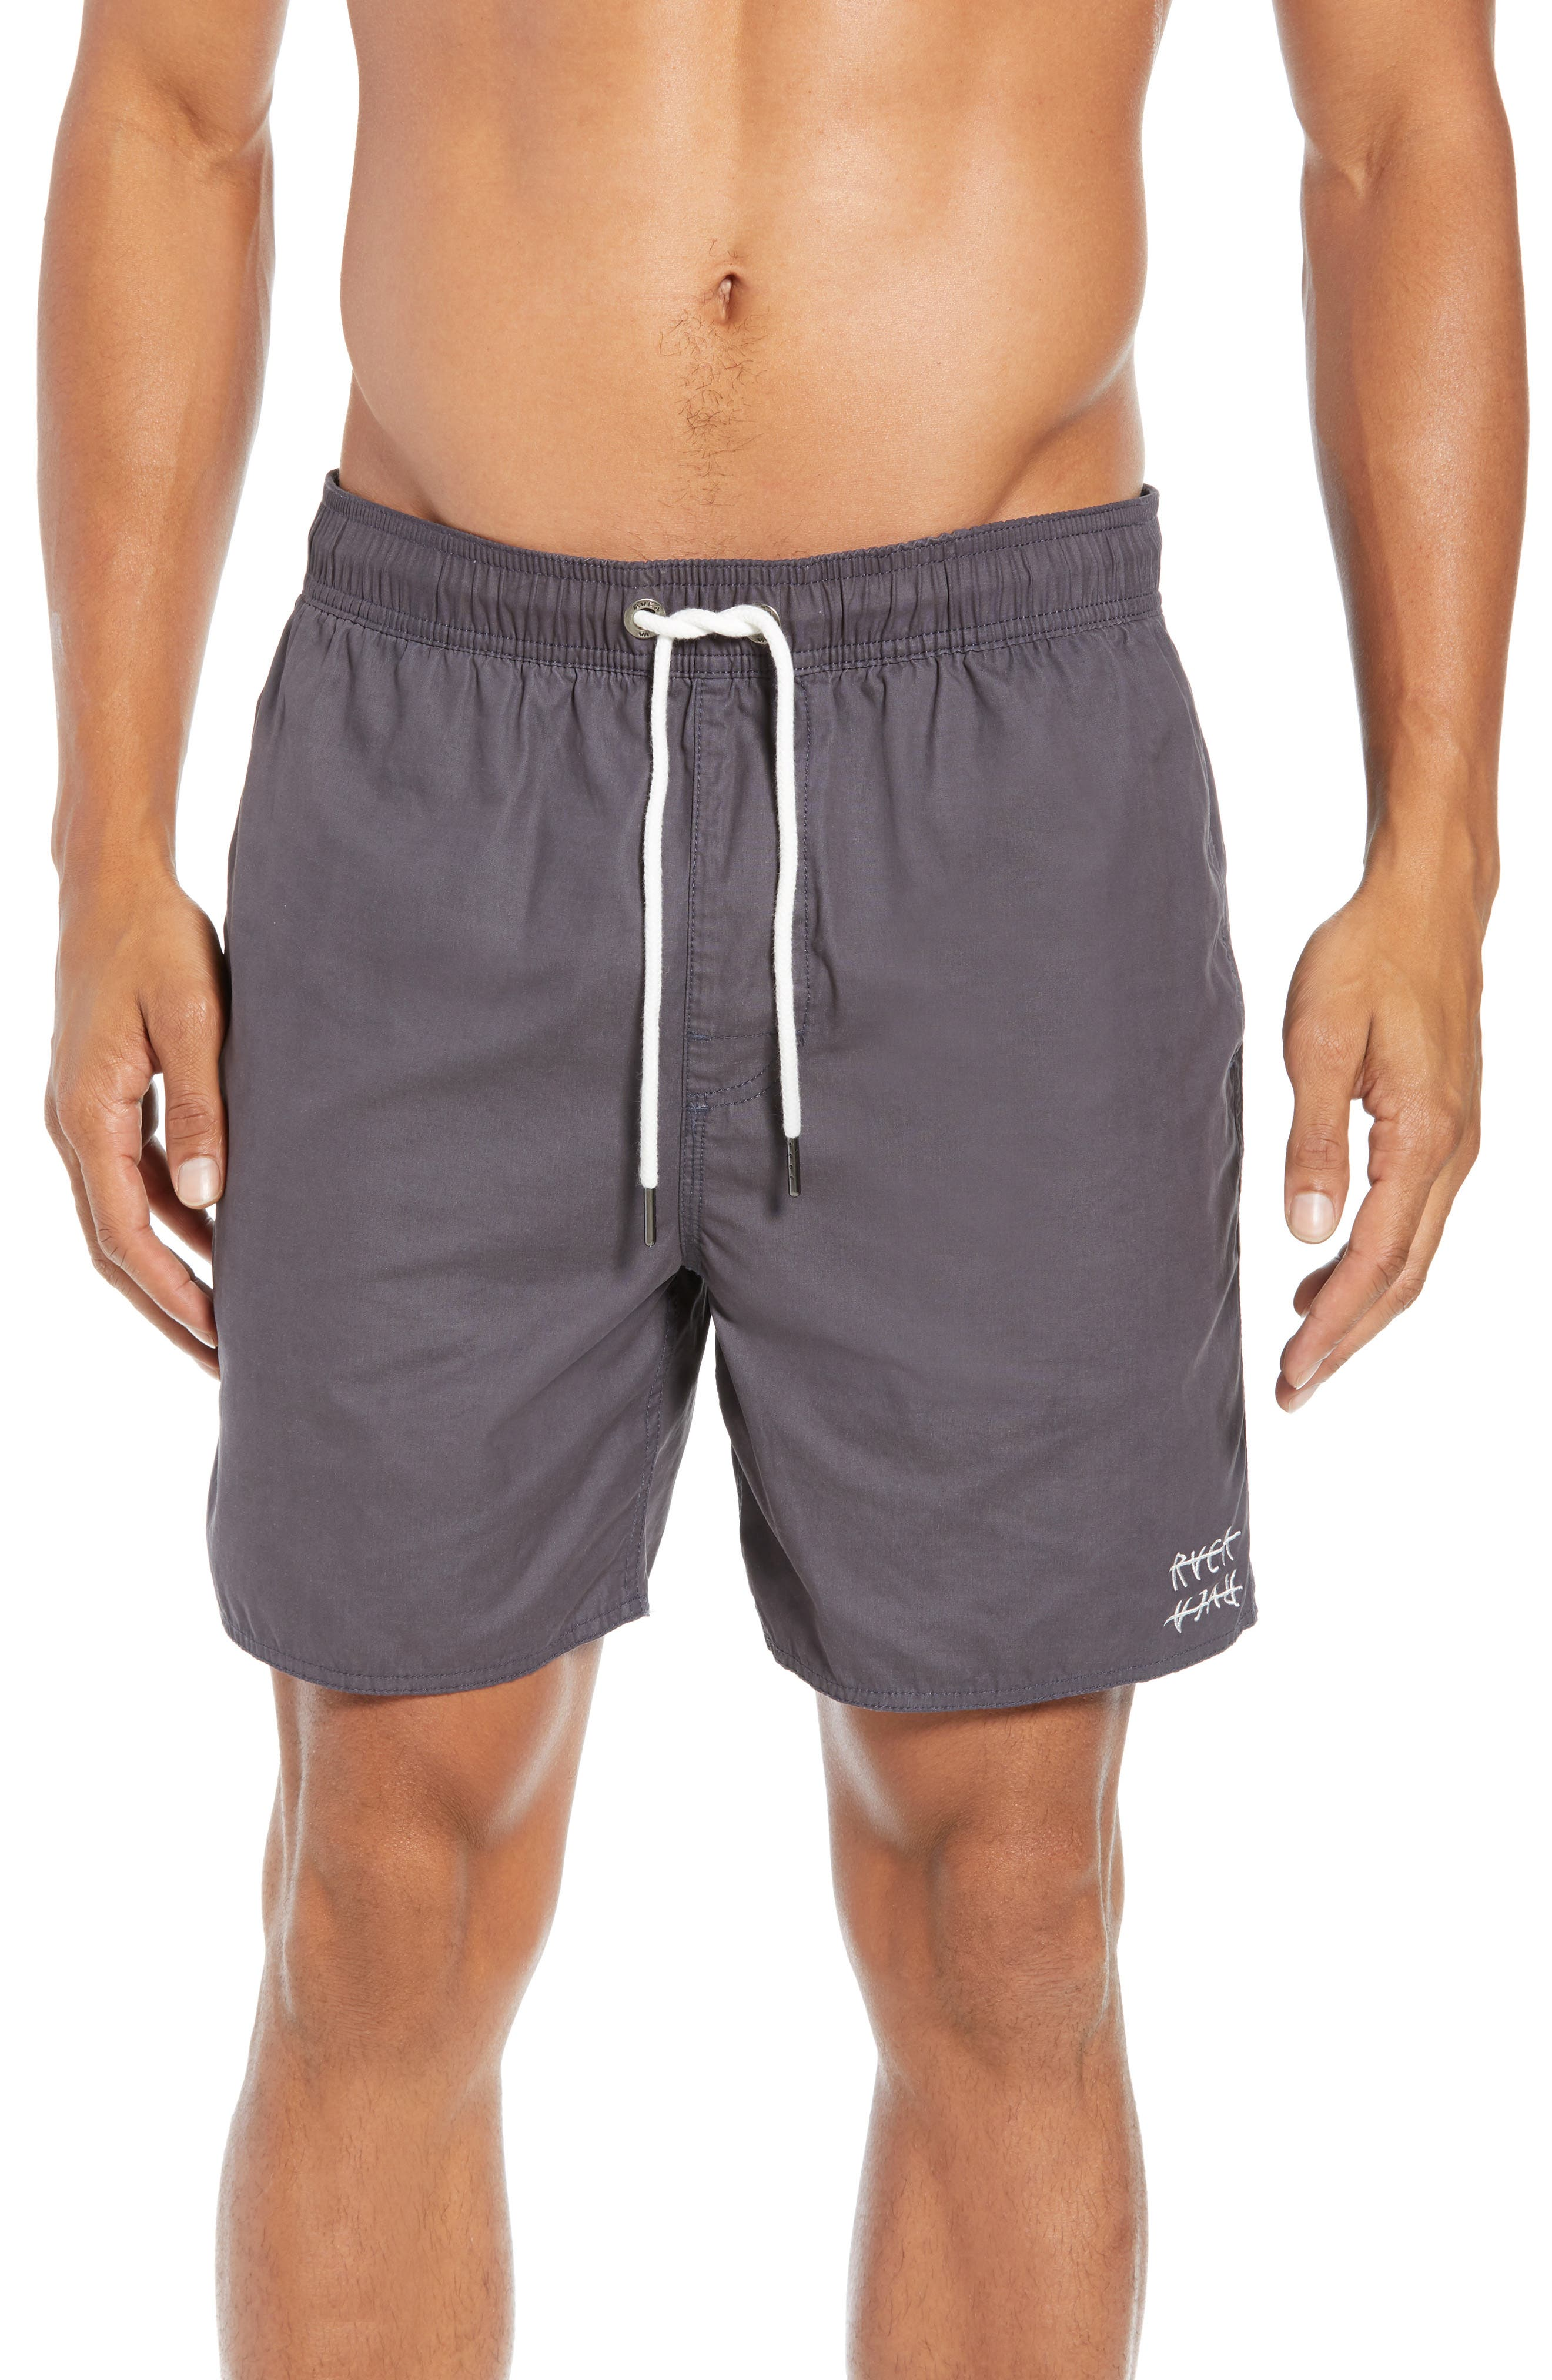 Horton Swim Trunks,                         Main,                         color, OIL GREY